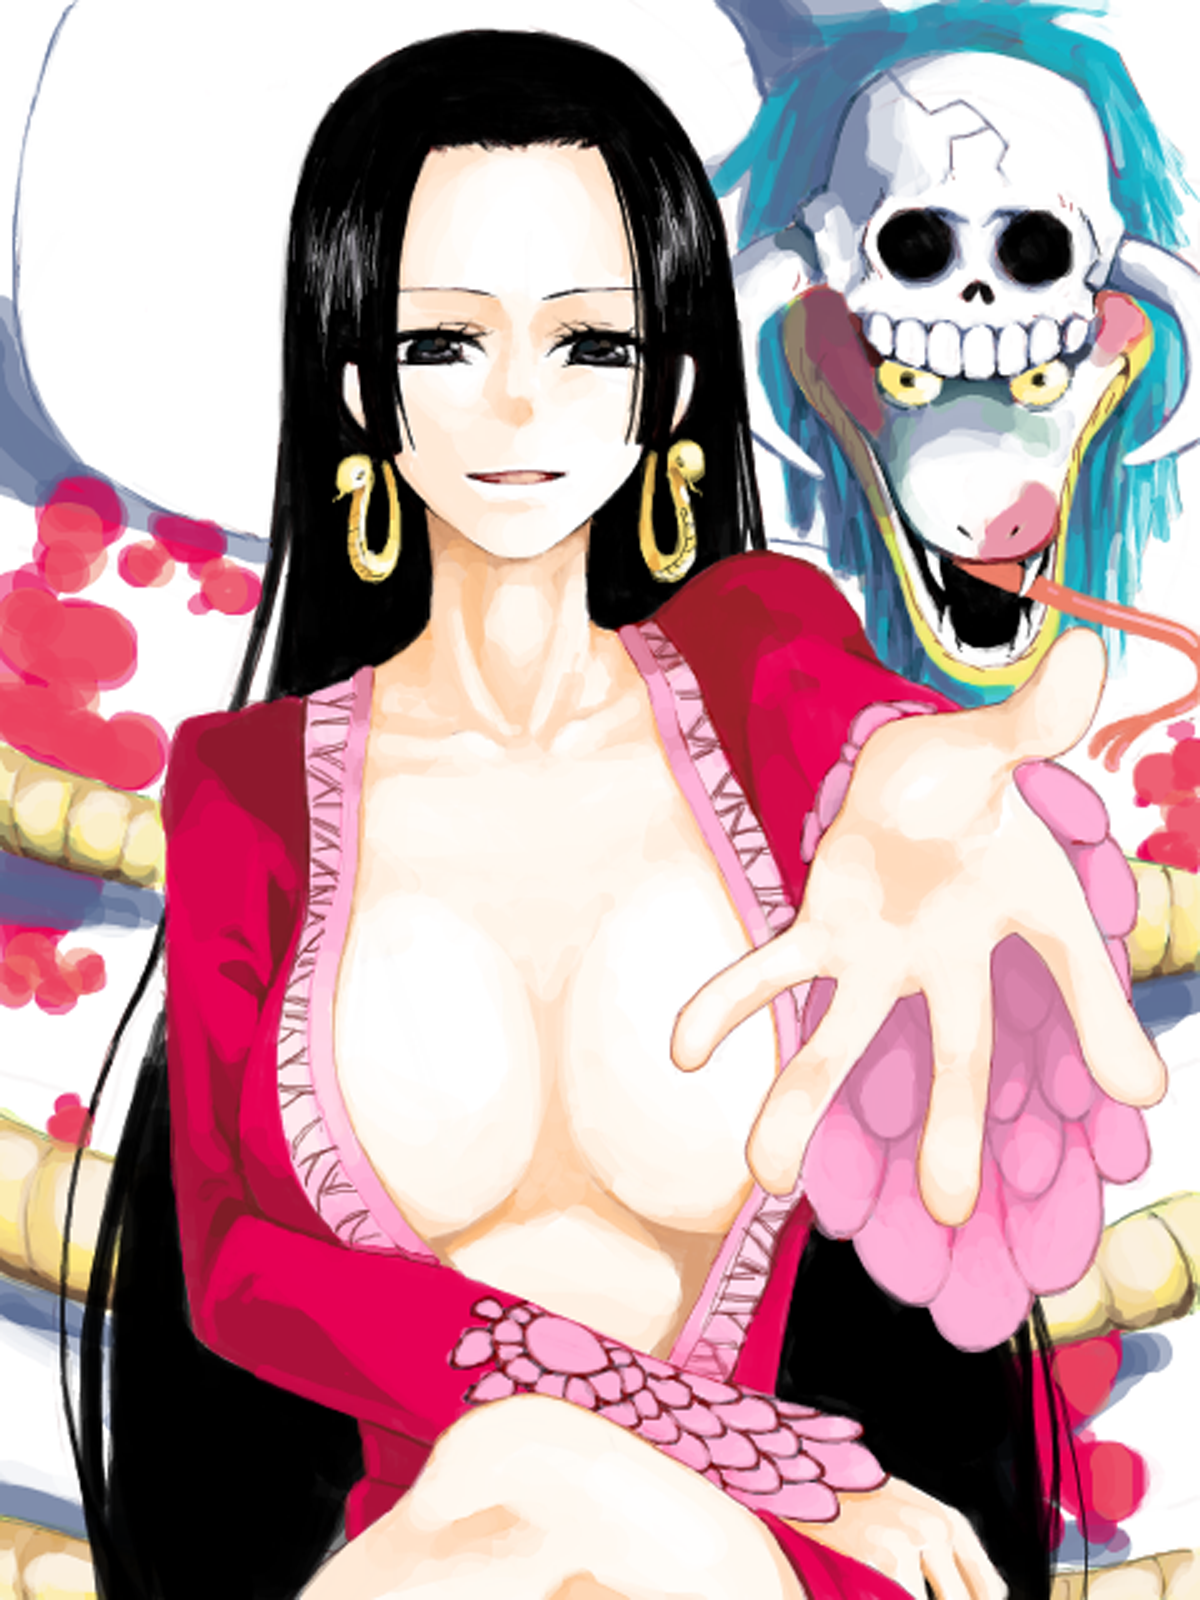 Toon sex pic ##00013061782 boa hancock breasts cleavage highres long hair looking at viewer one piece salome (one piece) snake